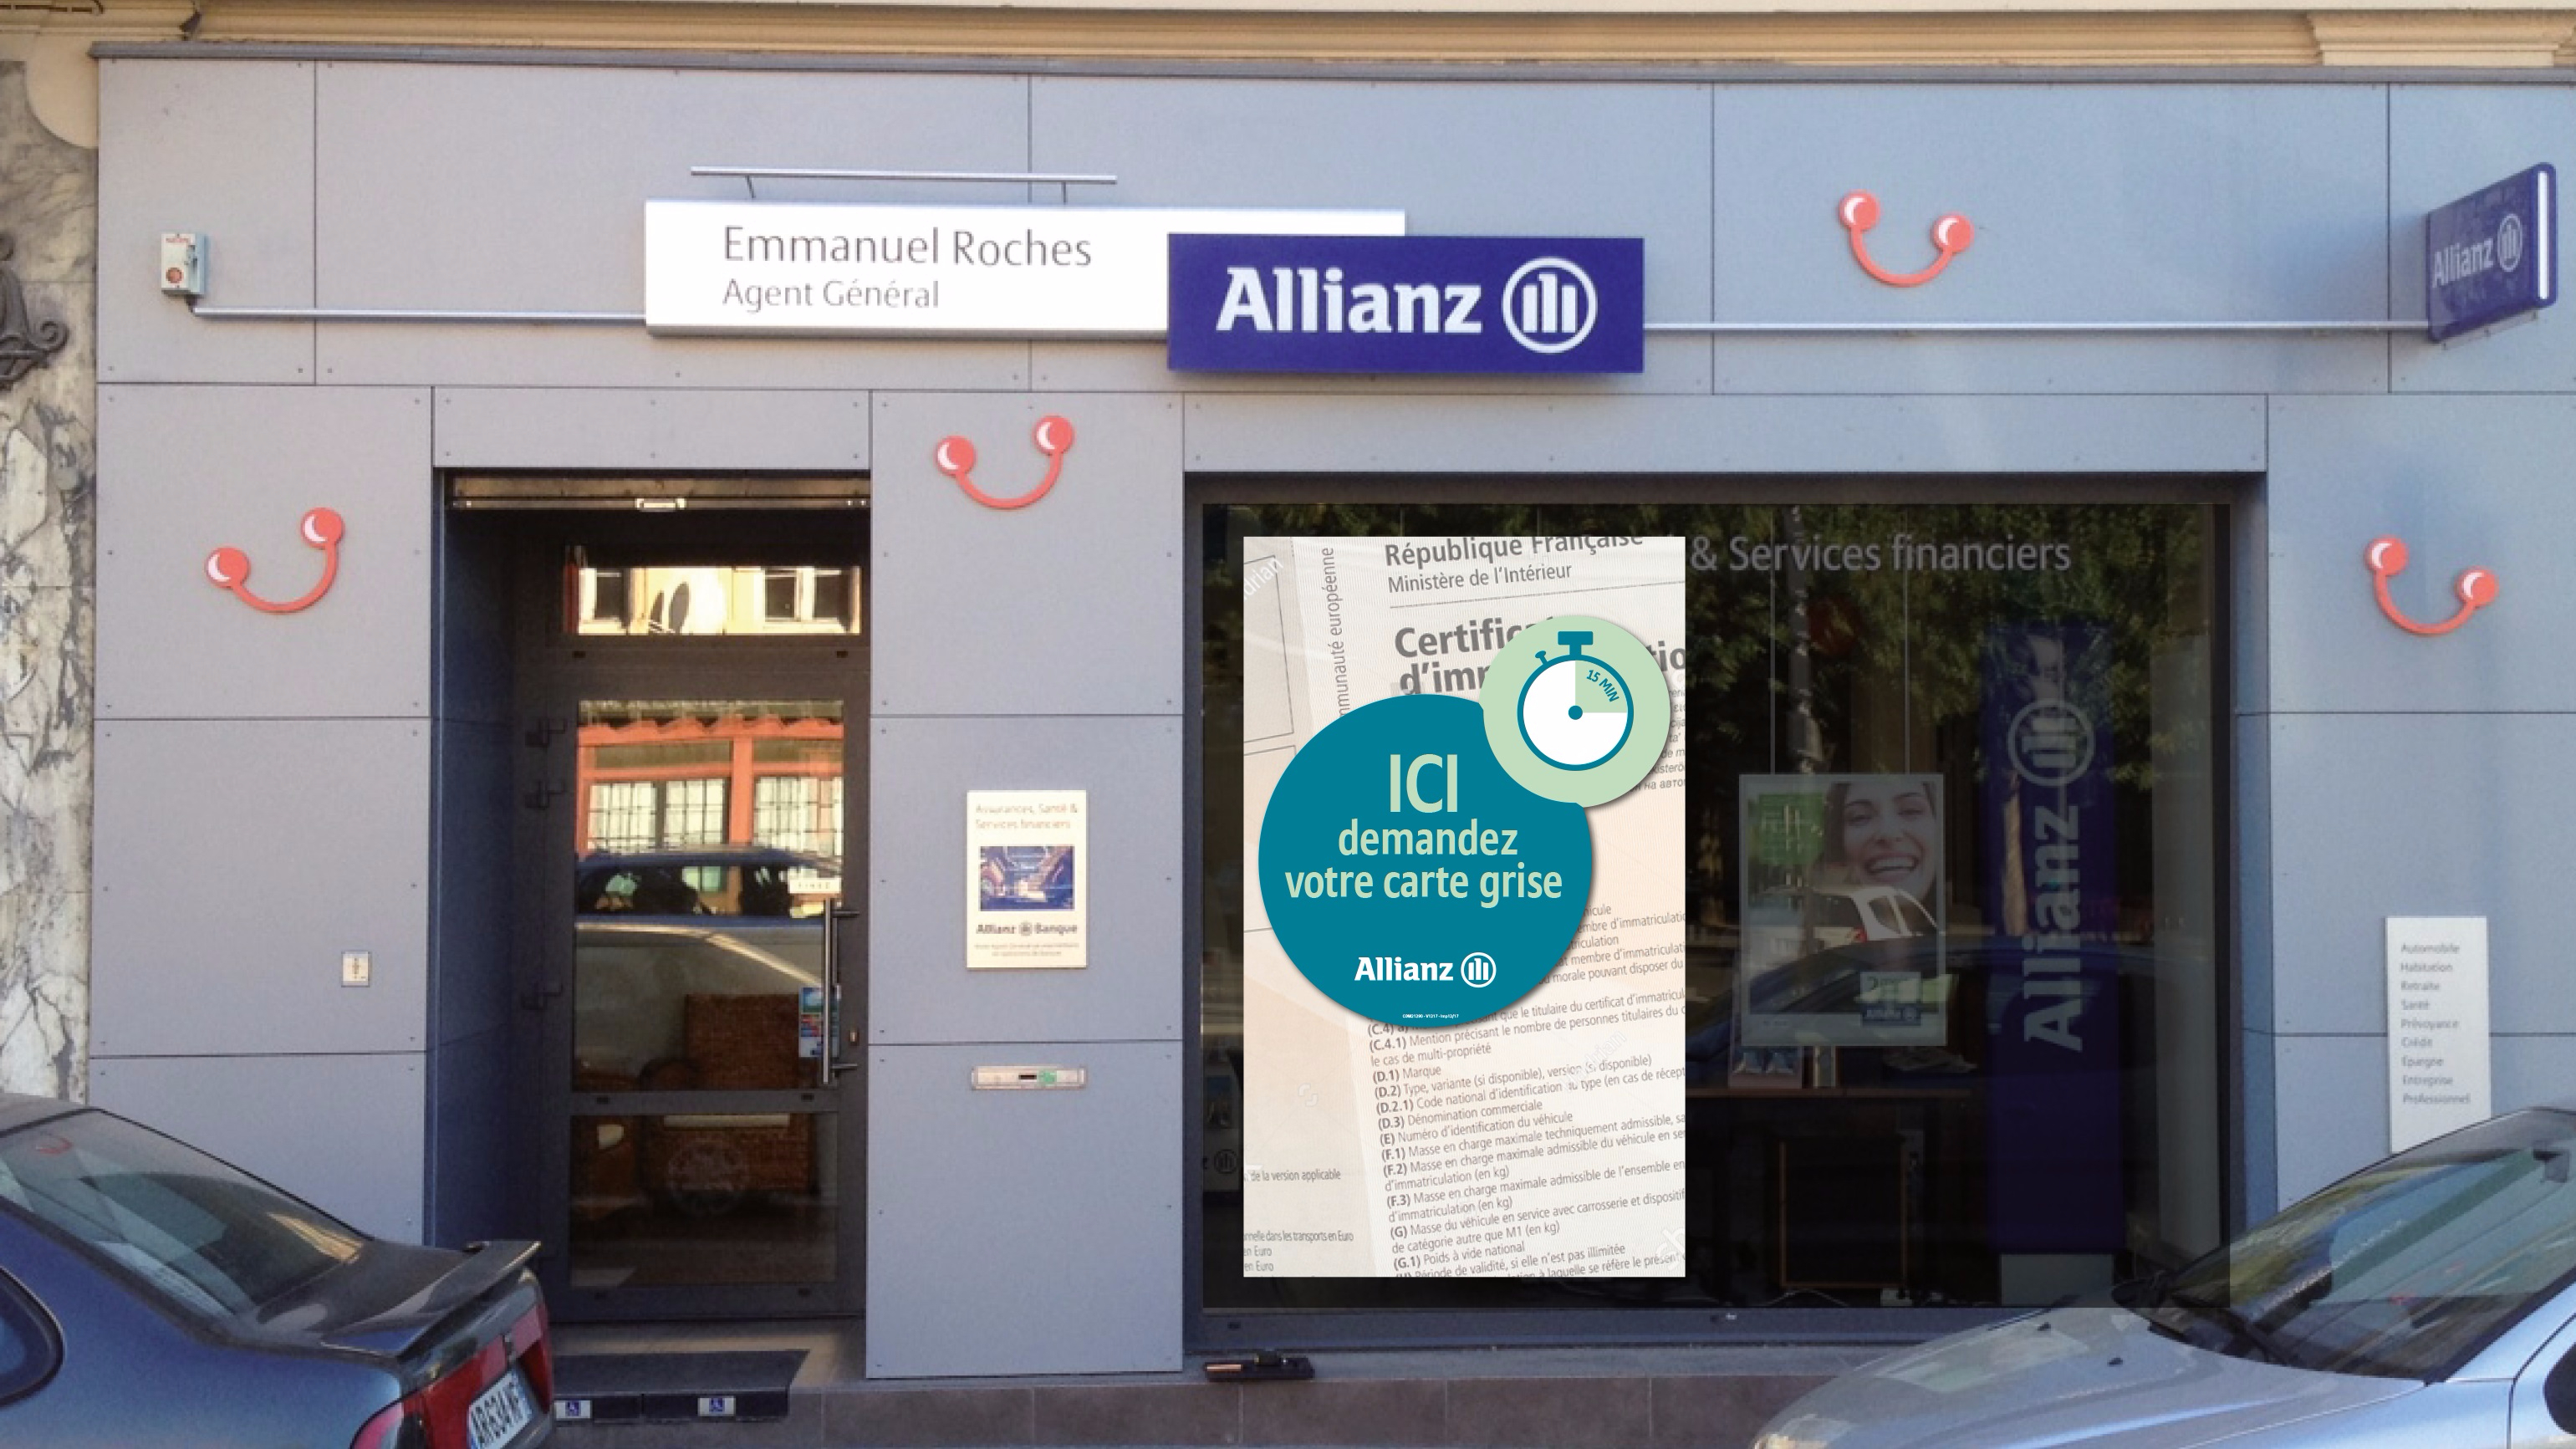 Allianz St quentin la fontaine - Emmanuel ROCHES